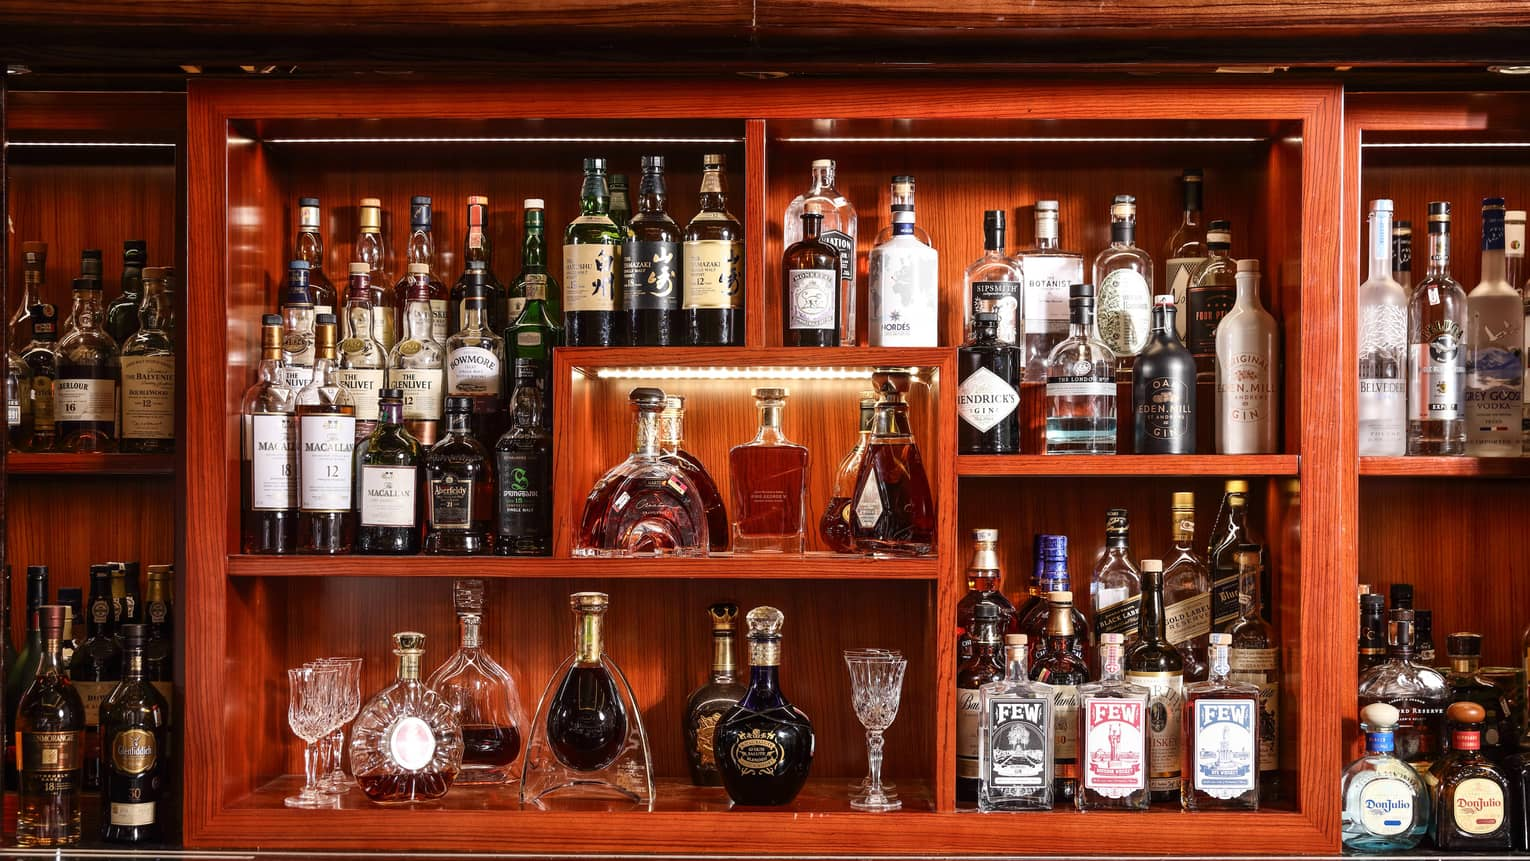 Wood back bar display lined with lights, with rows of liquor bottles